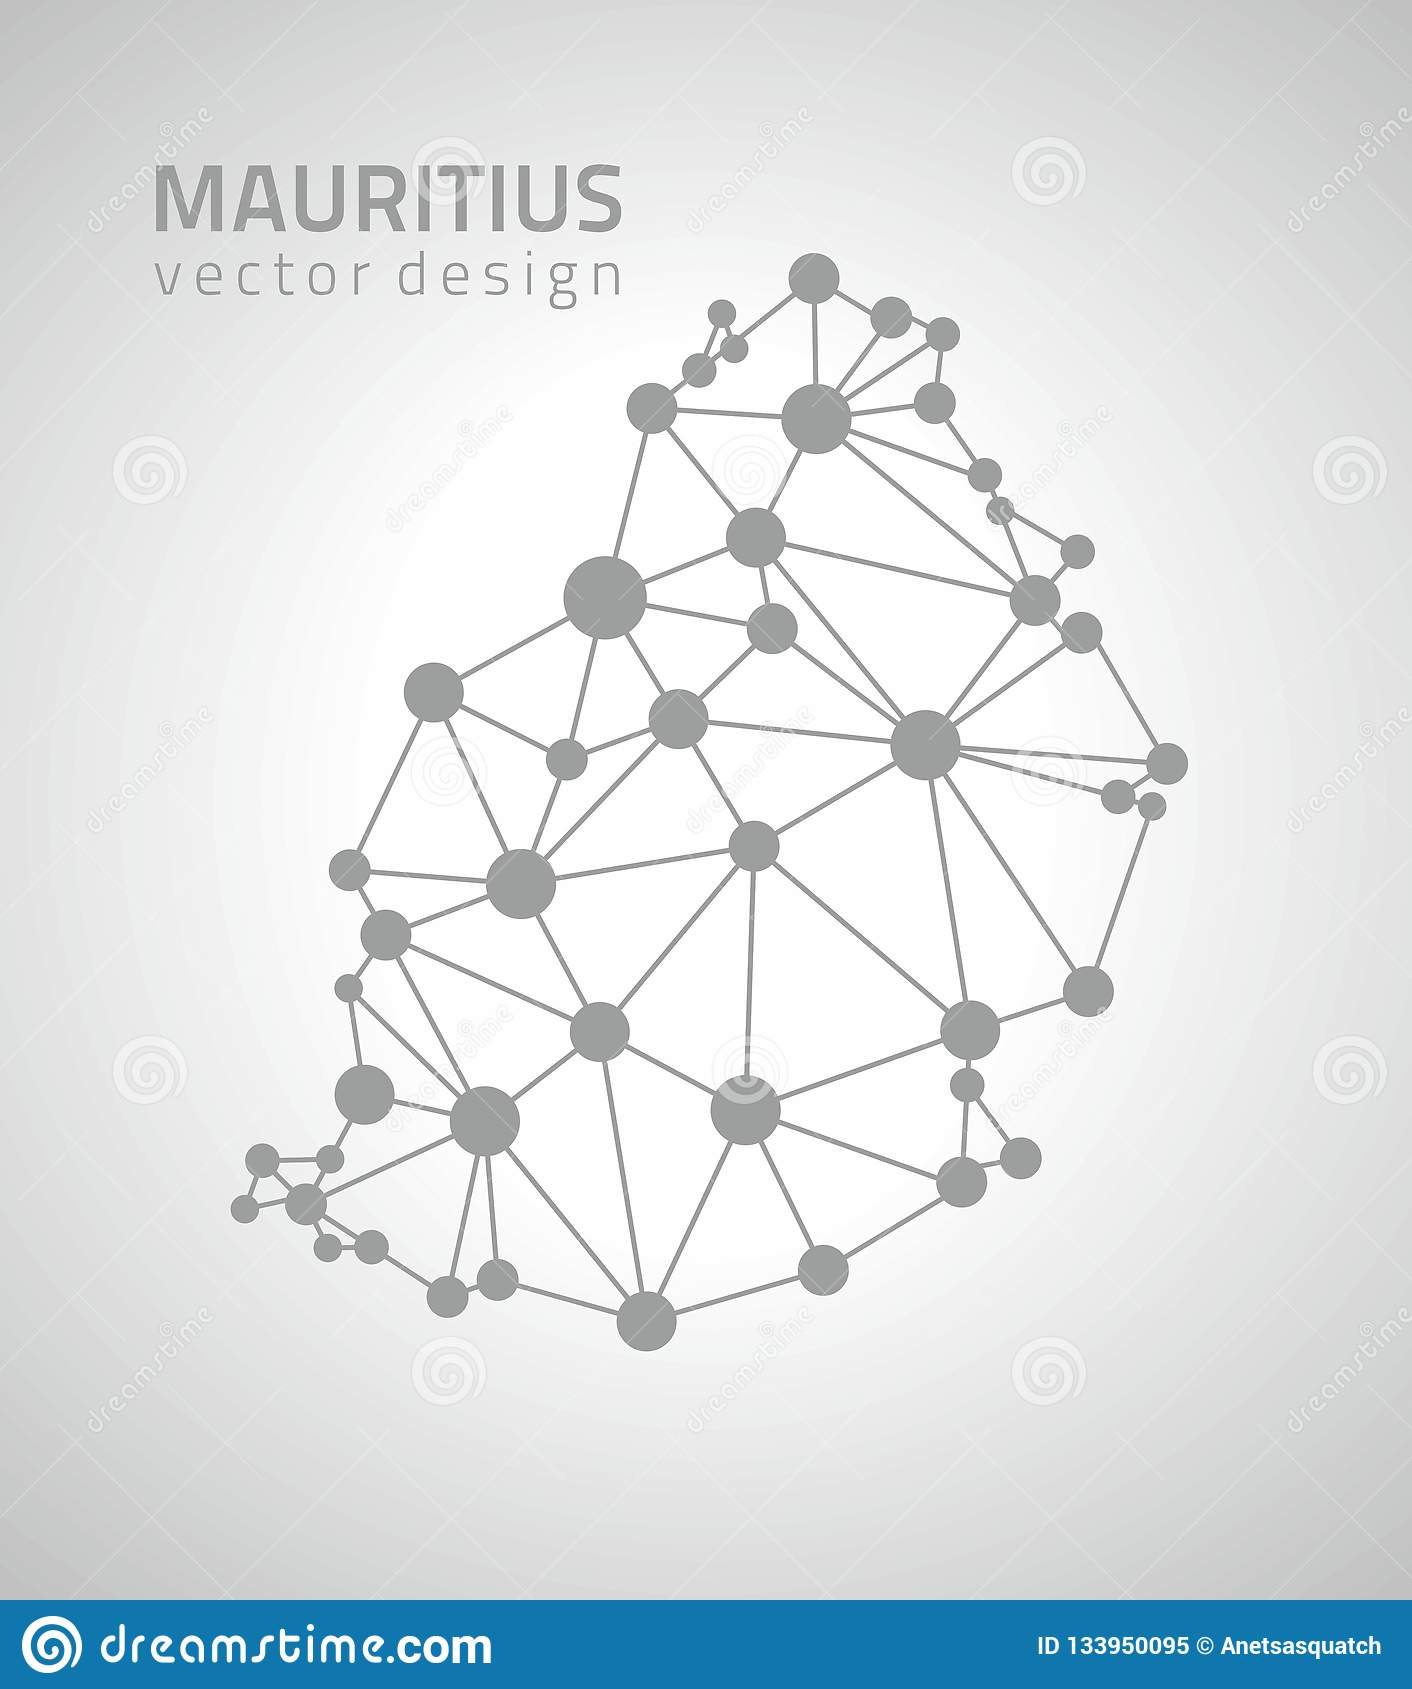 Mauritius Black Vector Outline Polygonal Triangle Map Stock ...